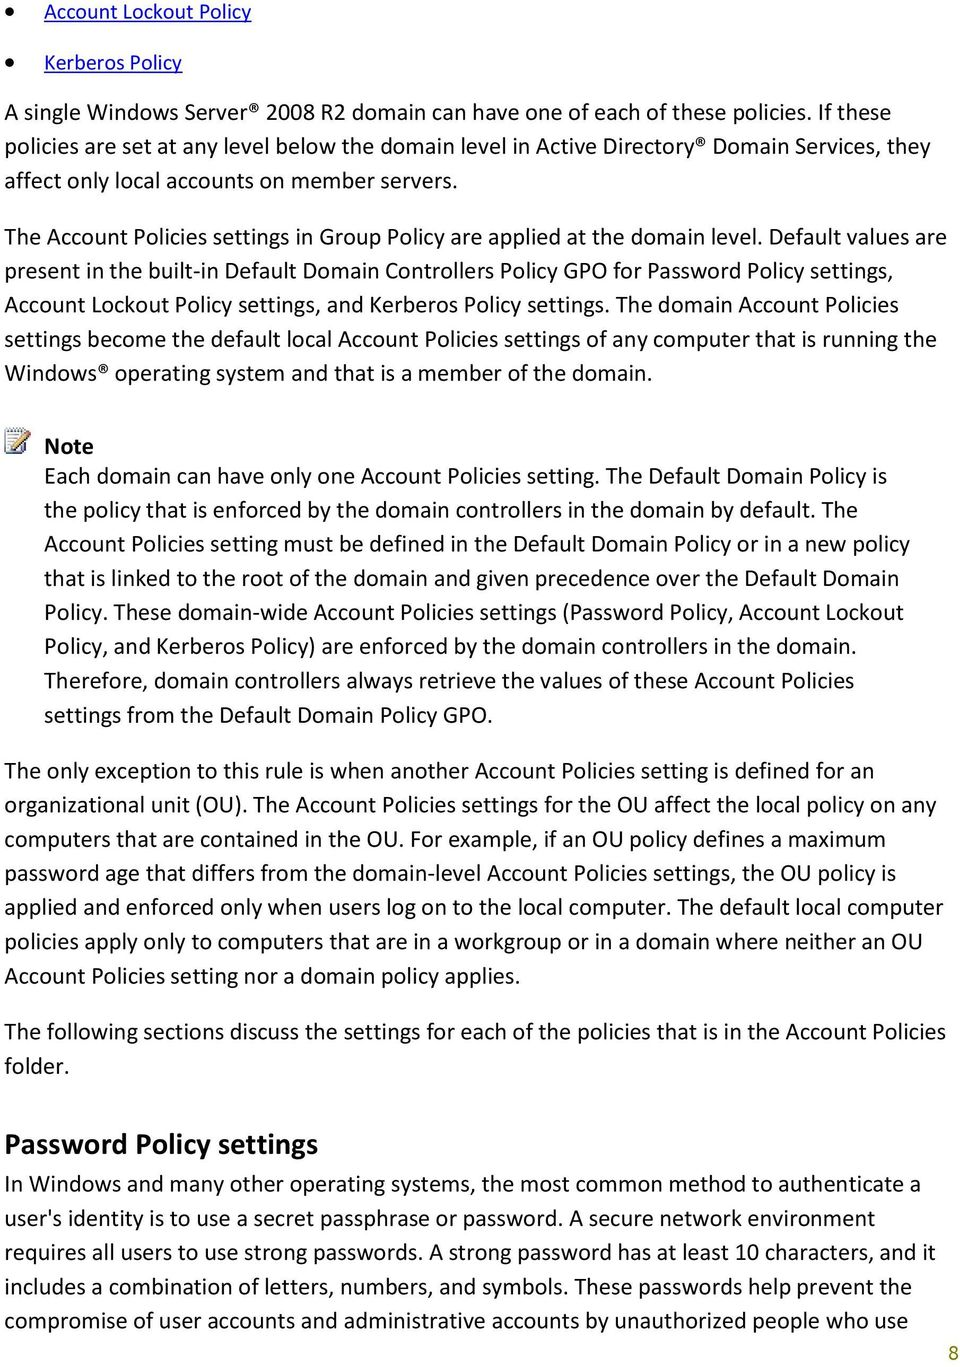 The Account Policies settings in Group Policy are applied at the domain level.